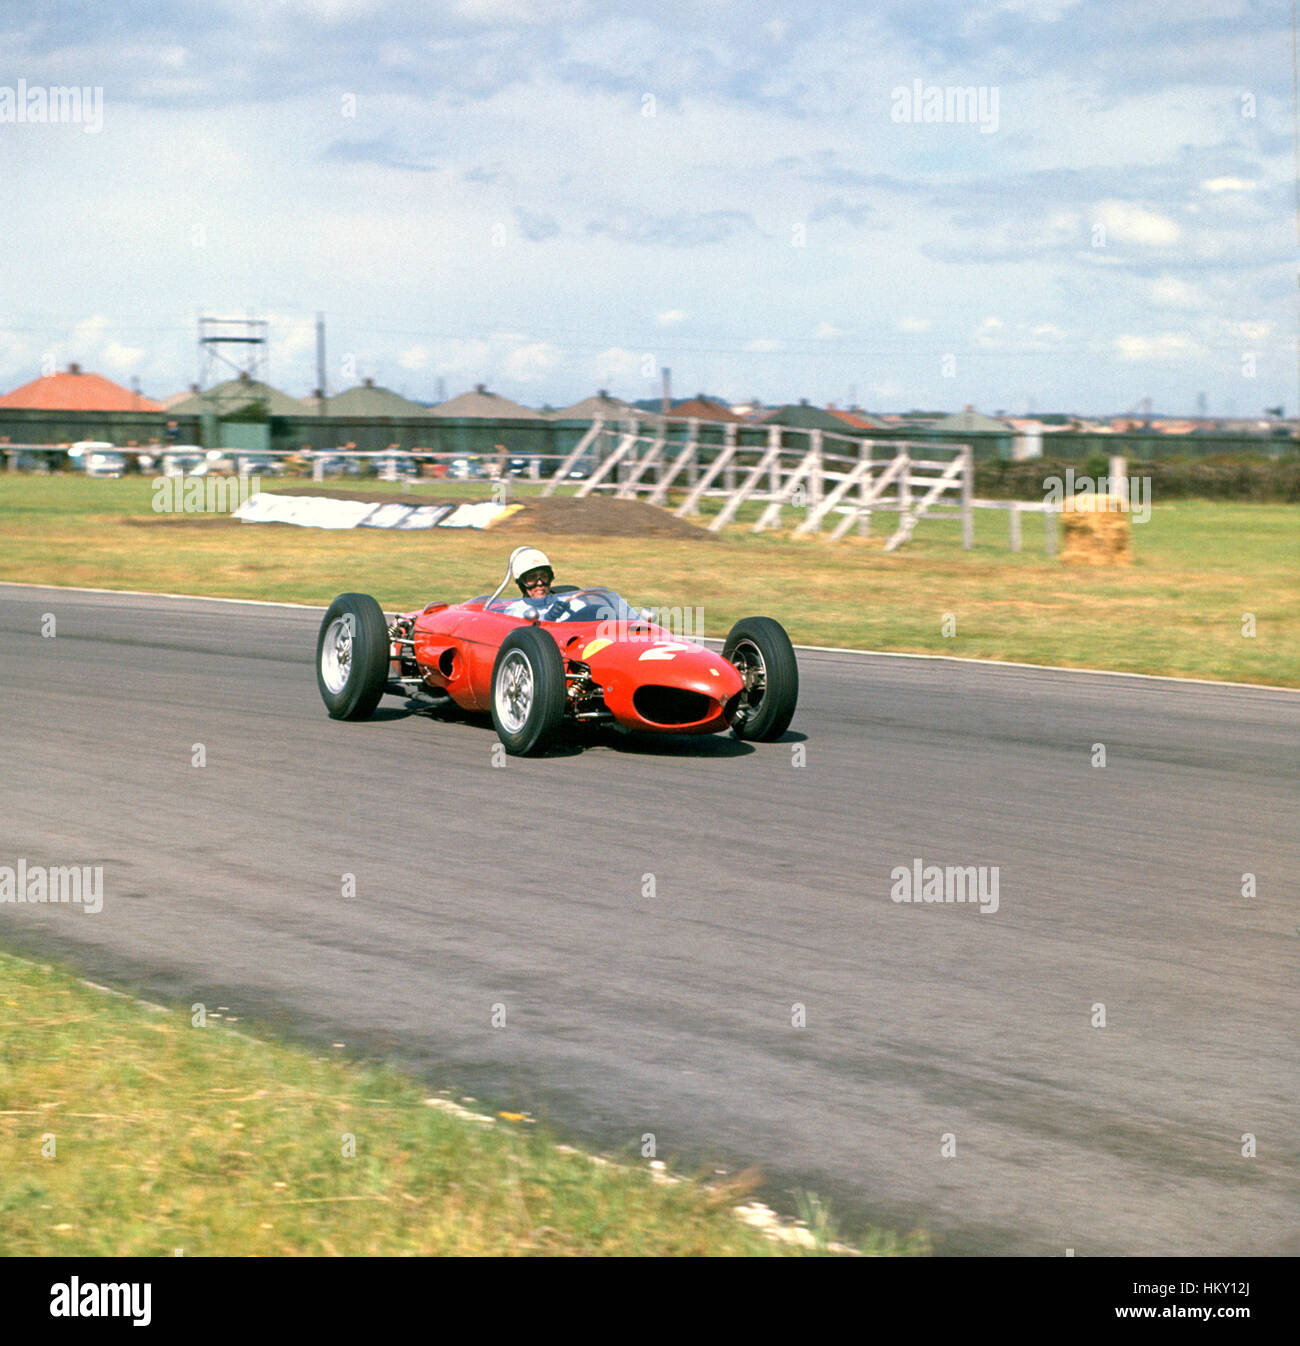 1961 Phil Hill US Ferrari 156 Aintree British GP 2nd GG - Stock Image